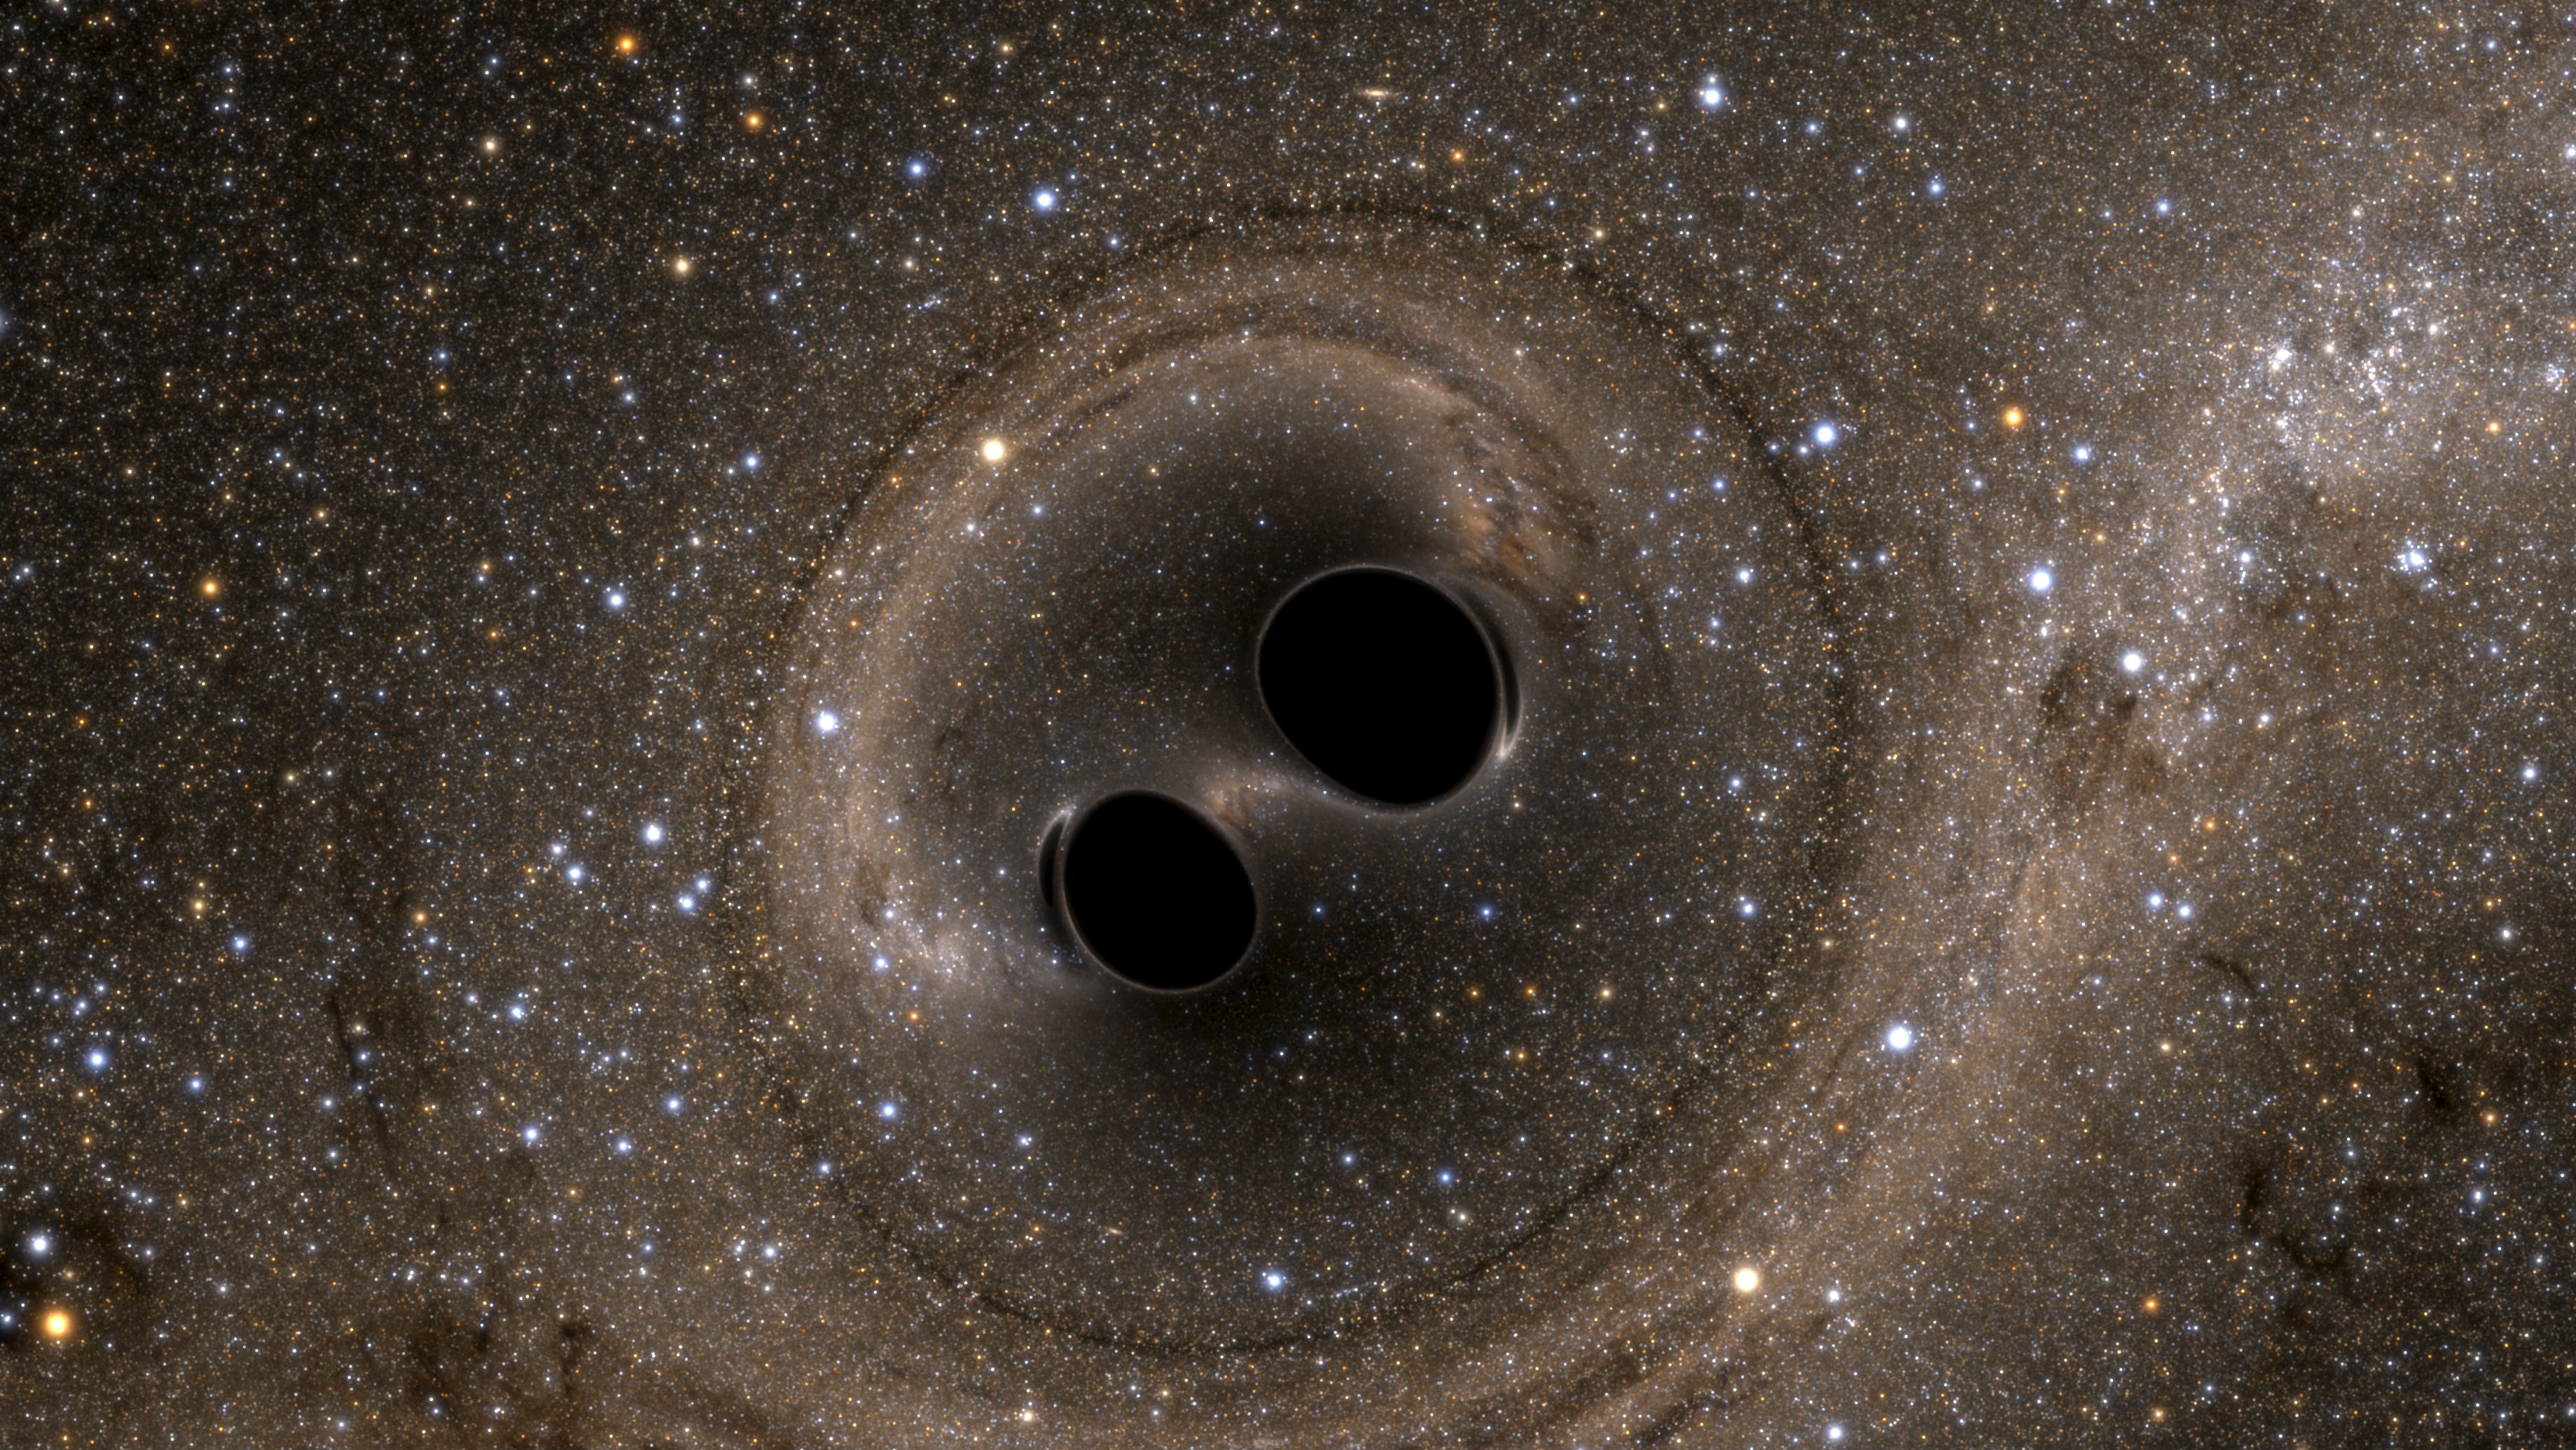 The collision of two black holes holes - a tremendously powerful event detected for the first time ever by the Laser Interferometer Gravitational-Wave Observatory, or LIGO - is seen in this still image from a computer simulation released in Washington February 11, 2016. Scientists have for the first time detected gravitational waves, ripples in space and time hypothesized by Albert Einstein a century ago, in a landmark discovery announced on Thursday that opens a new window for studying the cosmos.